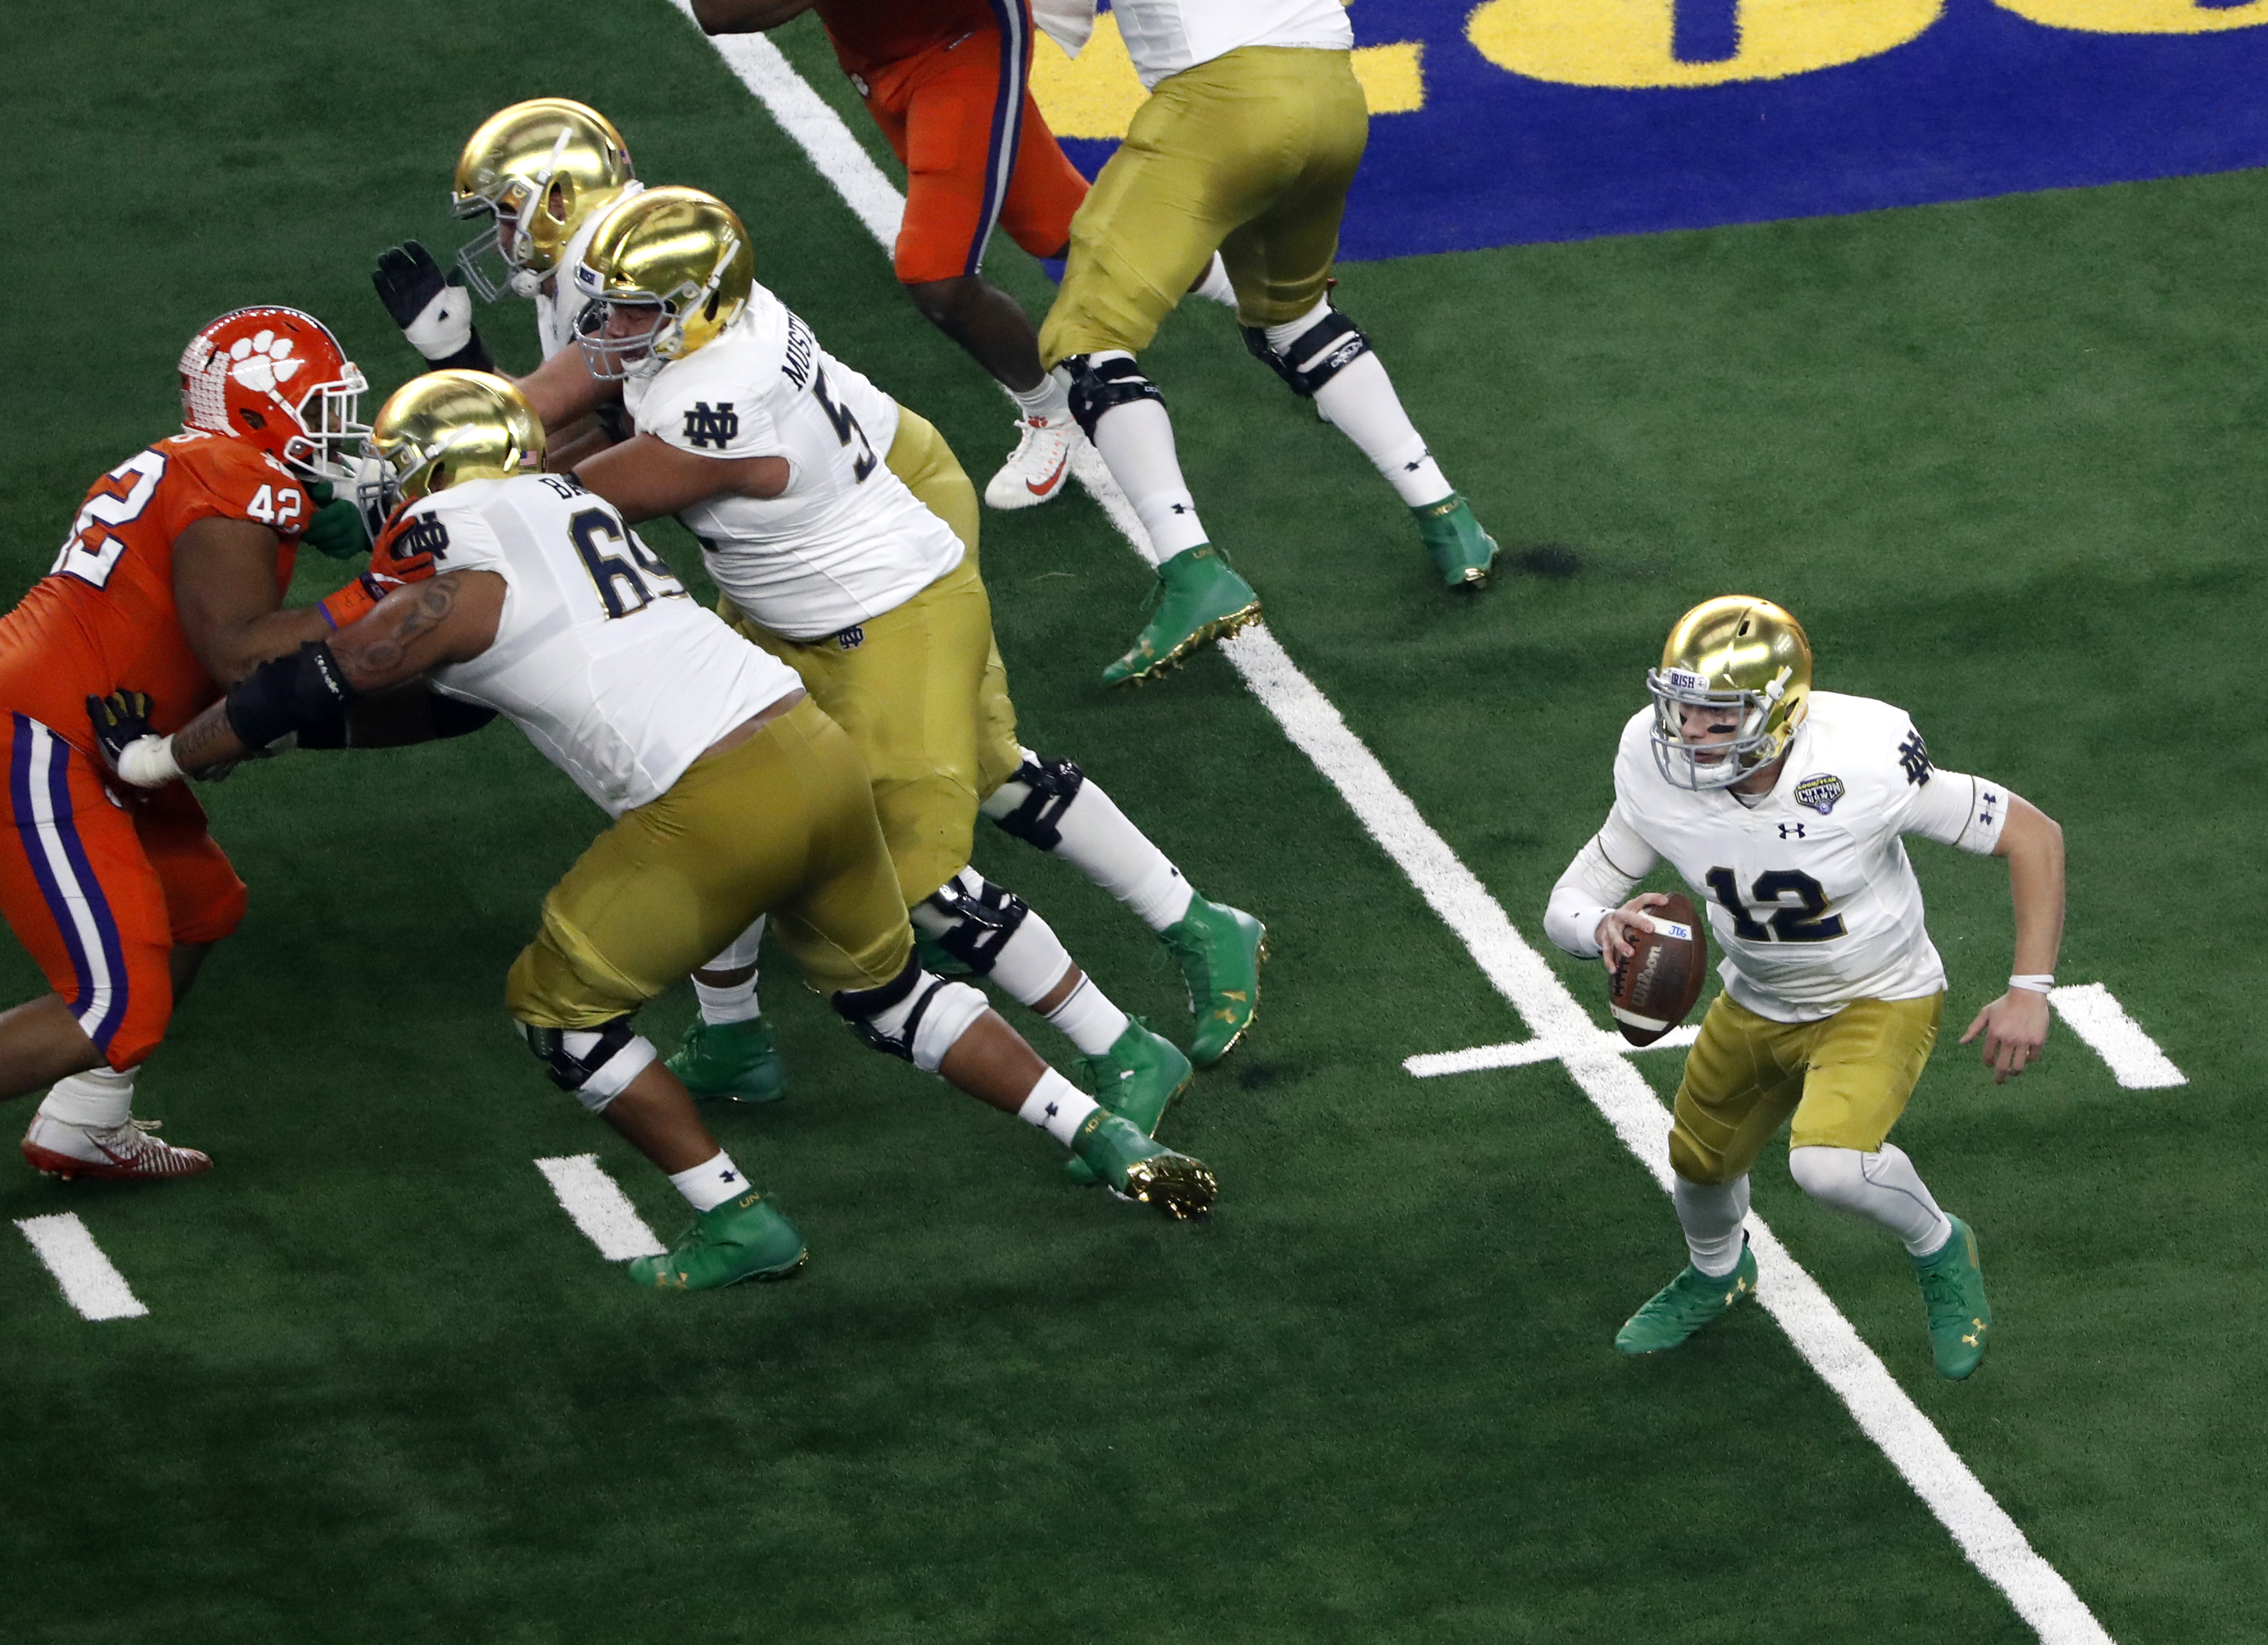 Notre Dame quarterback Ian Book (12) scrambles out of the pocket for a gain in the first half of the NCAA Cotton Bowl semi-final playoff football game against Clemson on Saturday, Dec. 29, 2018, in Arlington, Texas. (AP Photo/Roger Steinman)